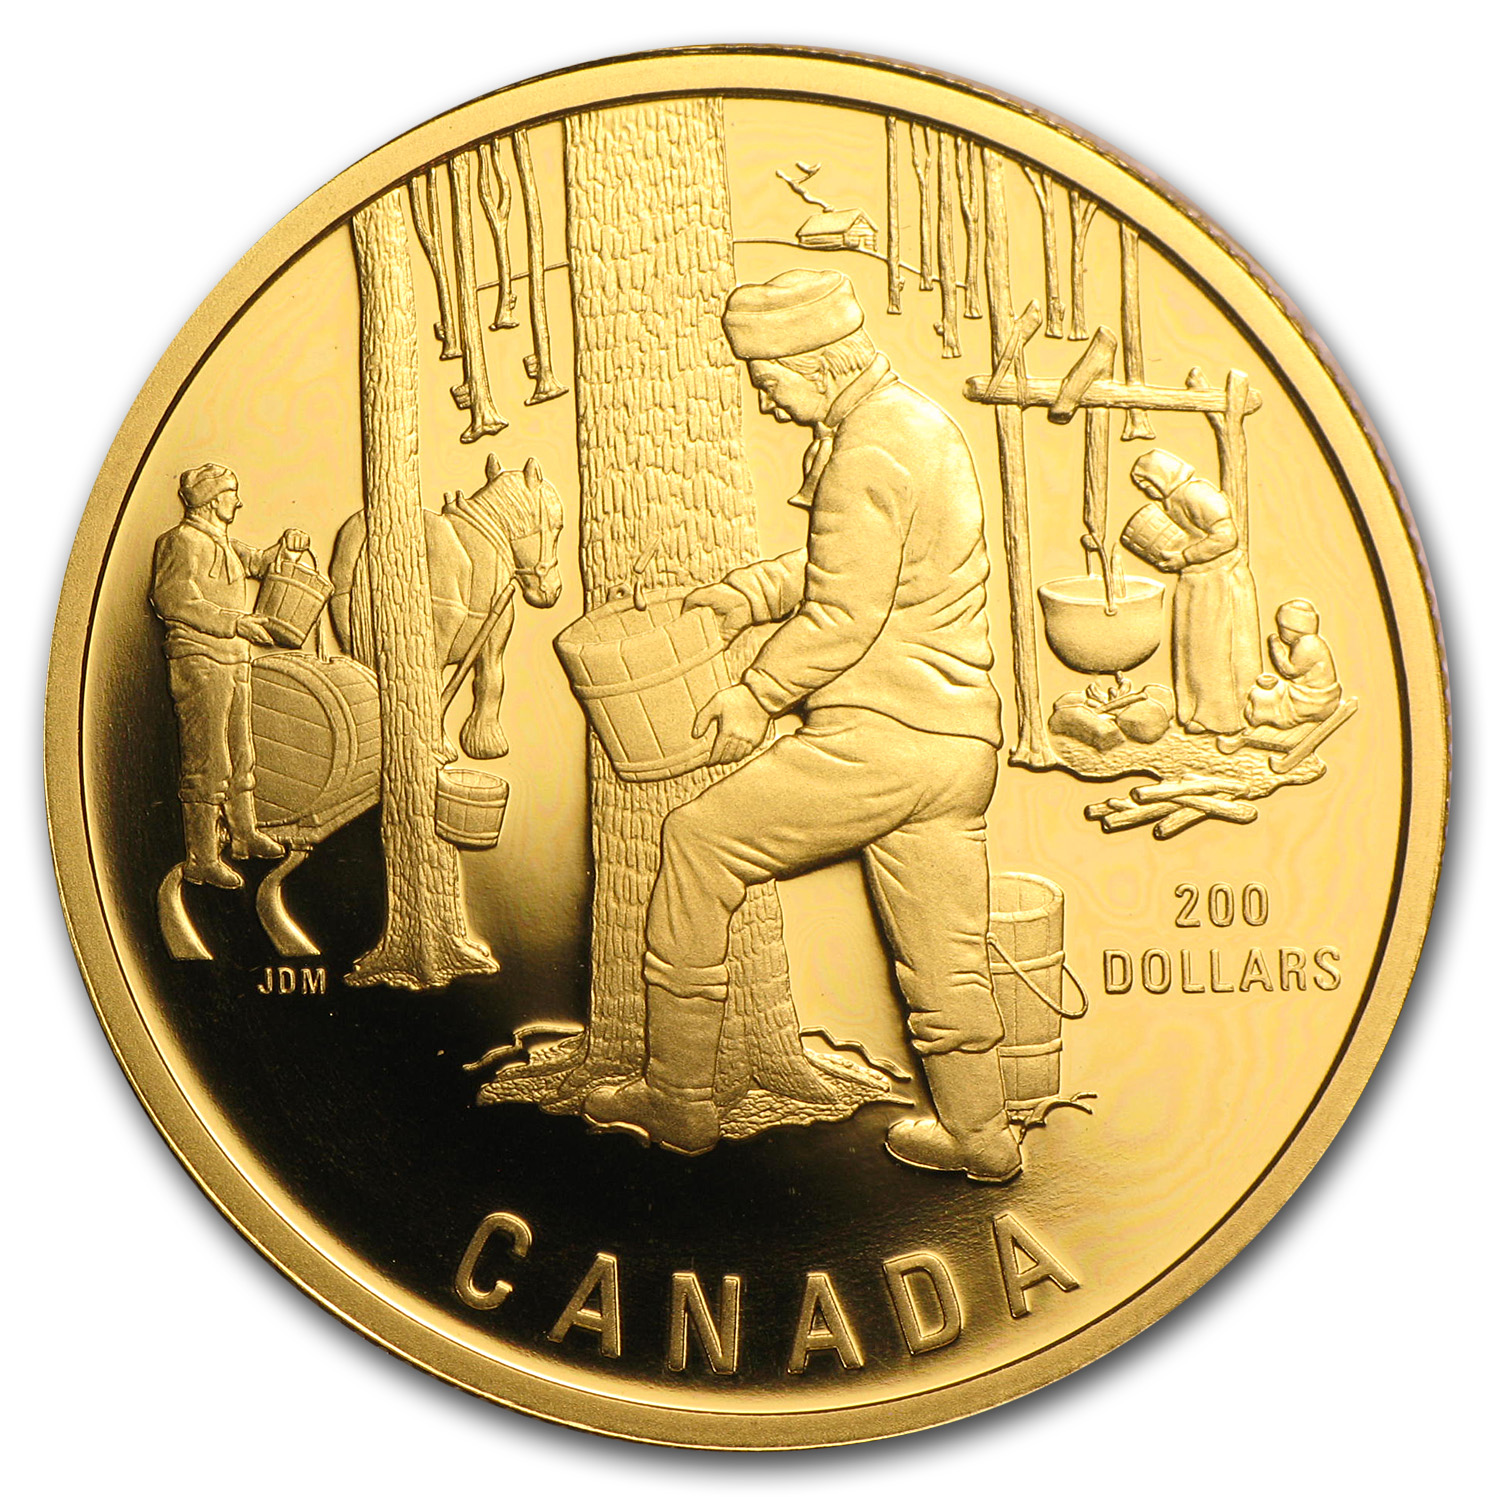 1995 1/2 oz Gold Canadian $200 Proof - Maple Syrup Sugaring